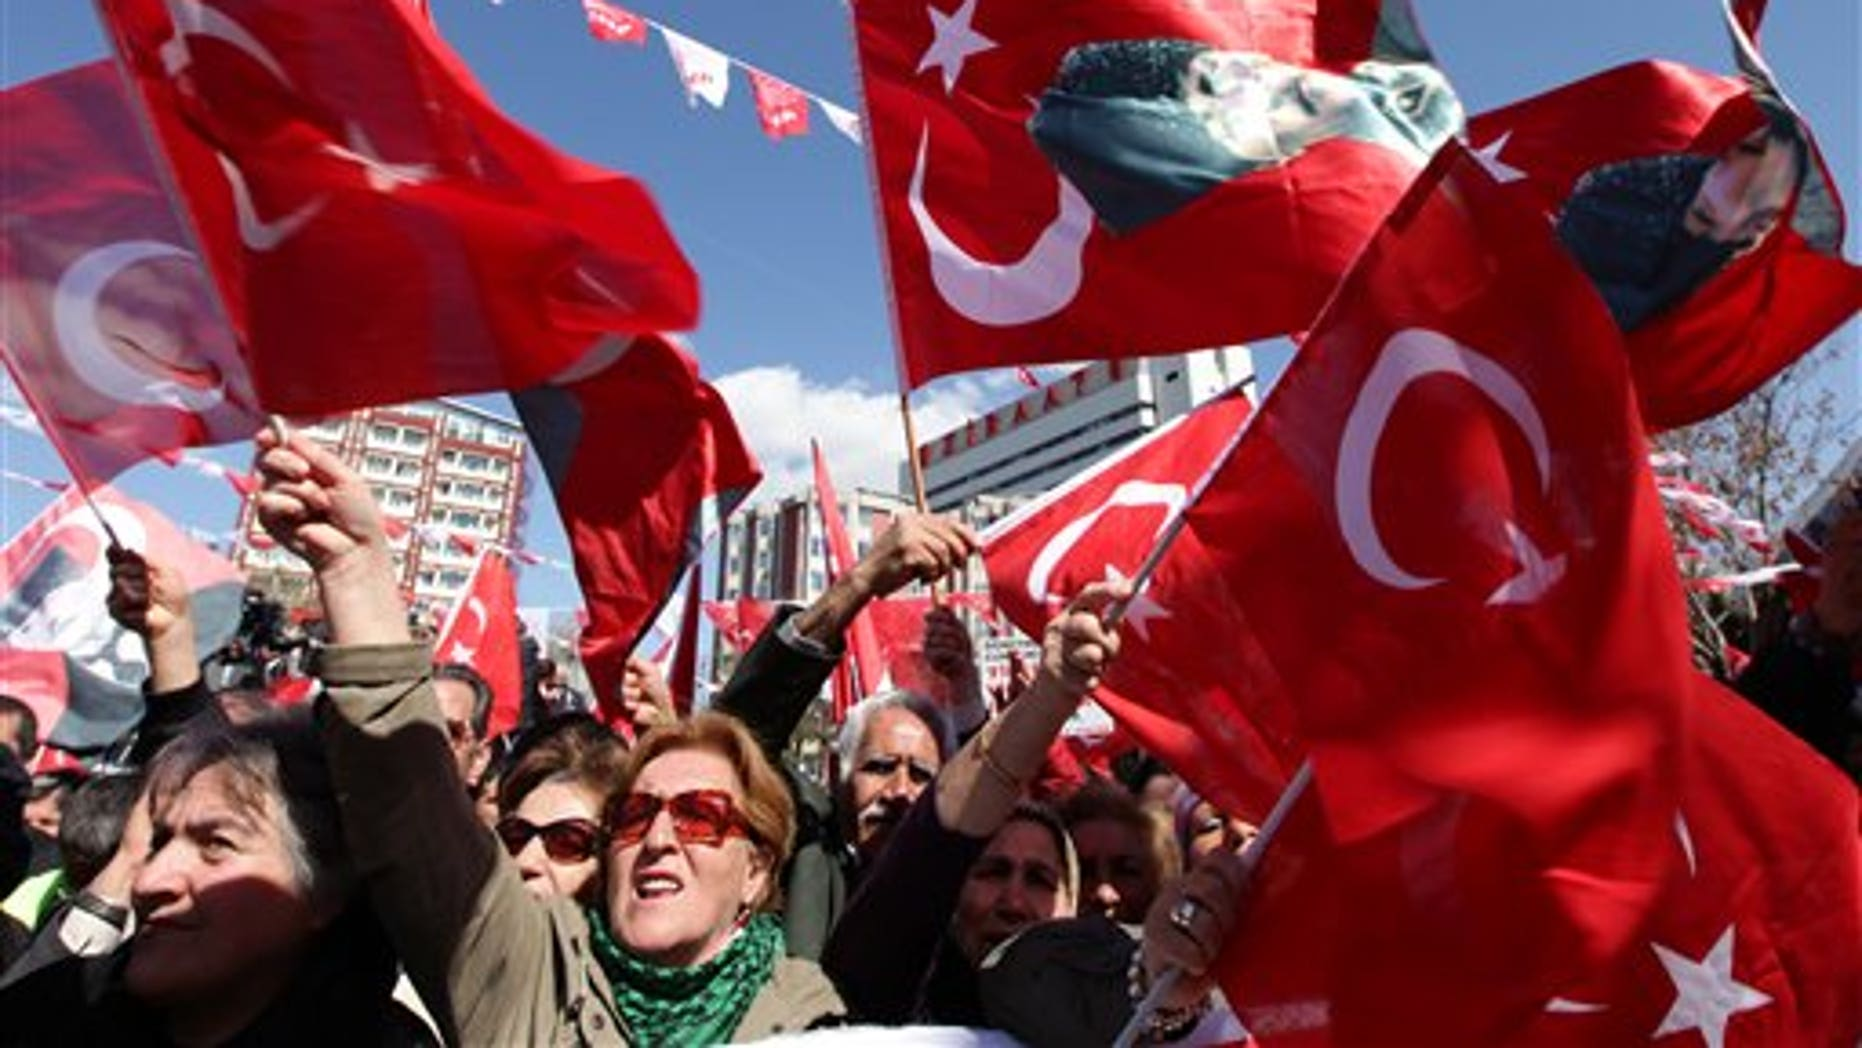 March 27, 2012: Supporters cheer Kemal Kilicdaroglu, leader of the main opposition Republican People's Party, unseen, during a rally in Ankara, Turkey.